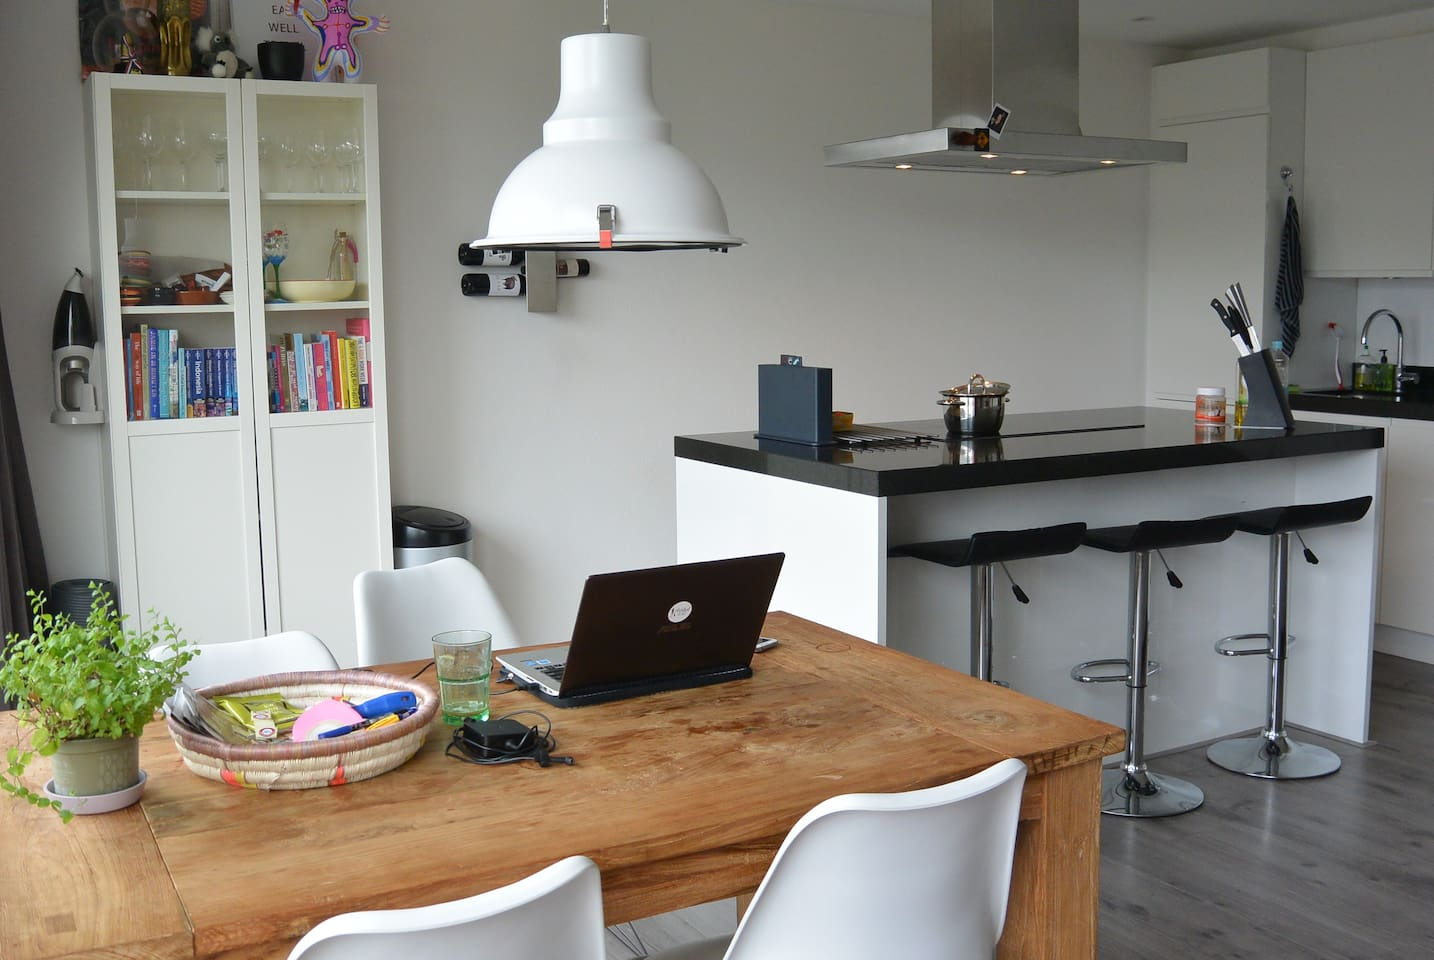 Our cosy kitchen